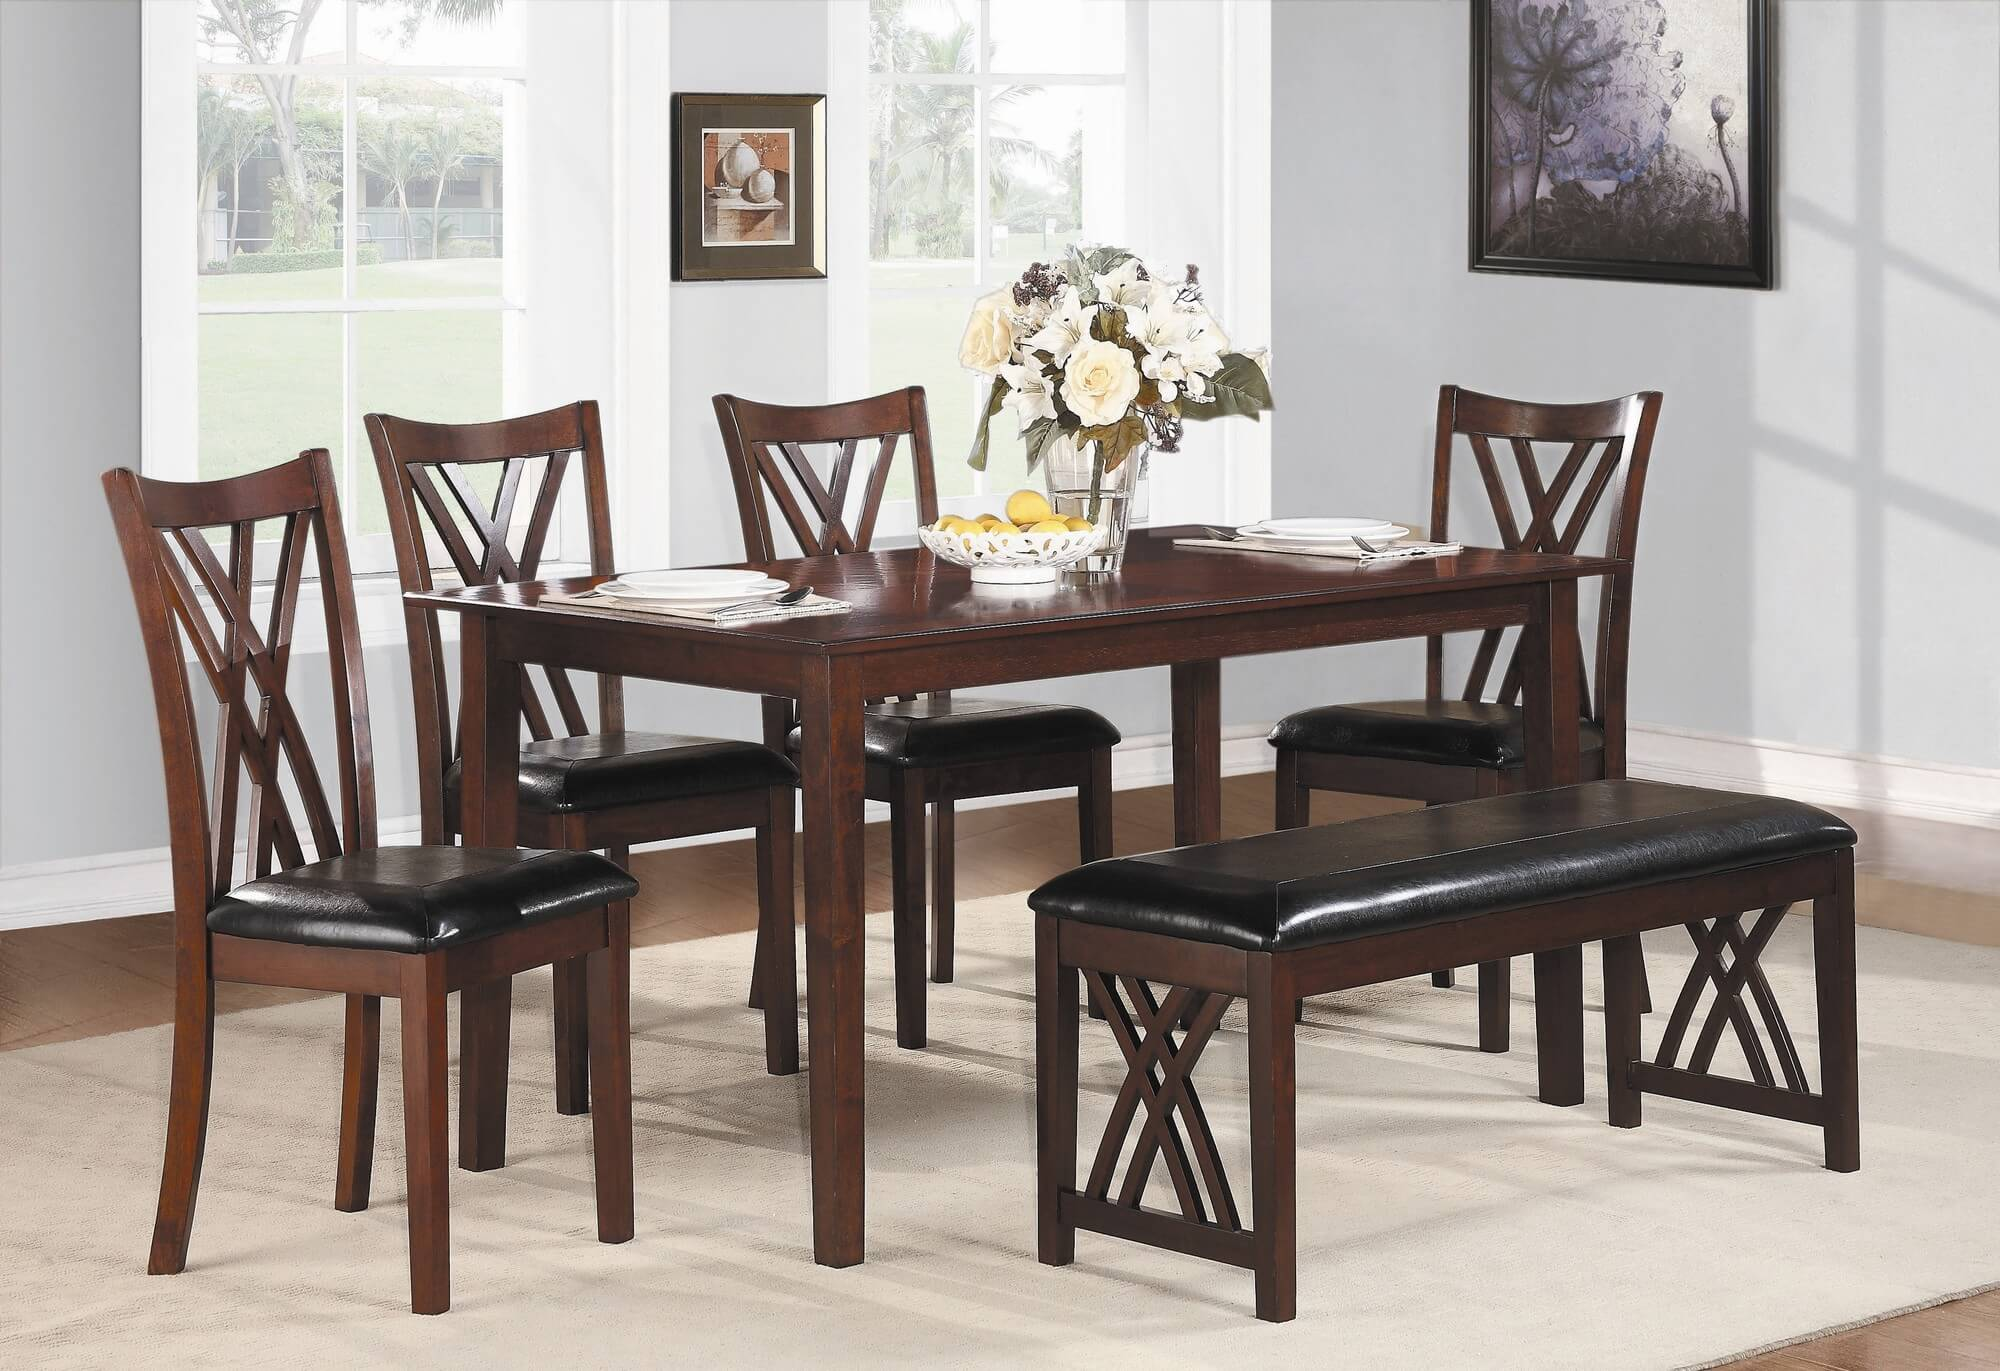 Dining Set With Bench With A Cherry Finish And Upholstered Chairs And